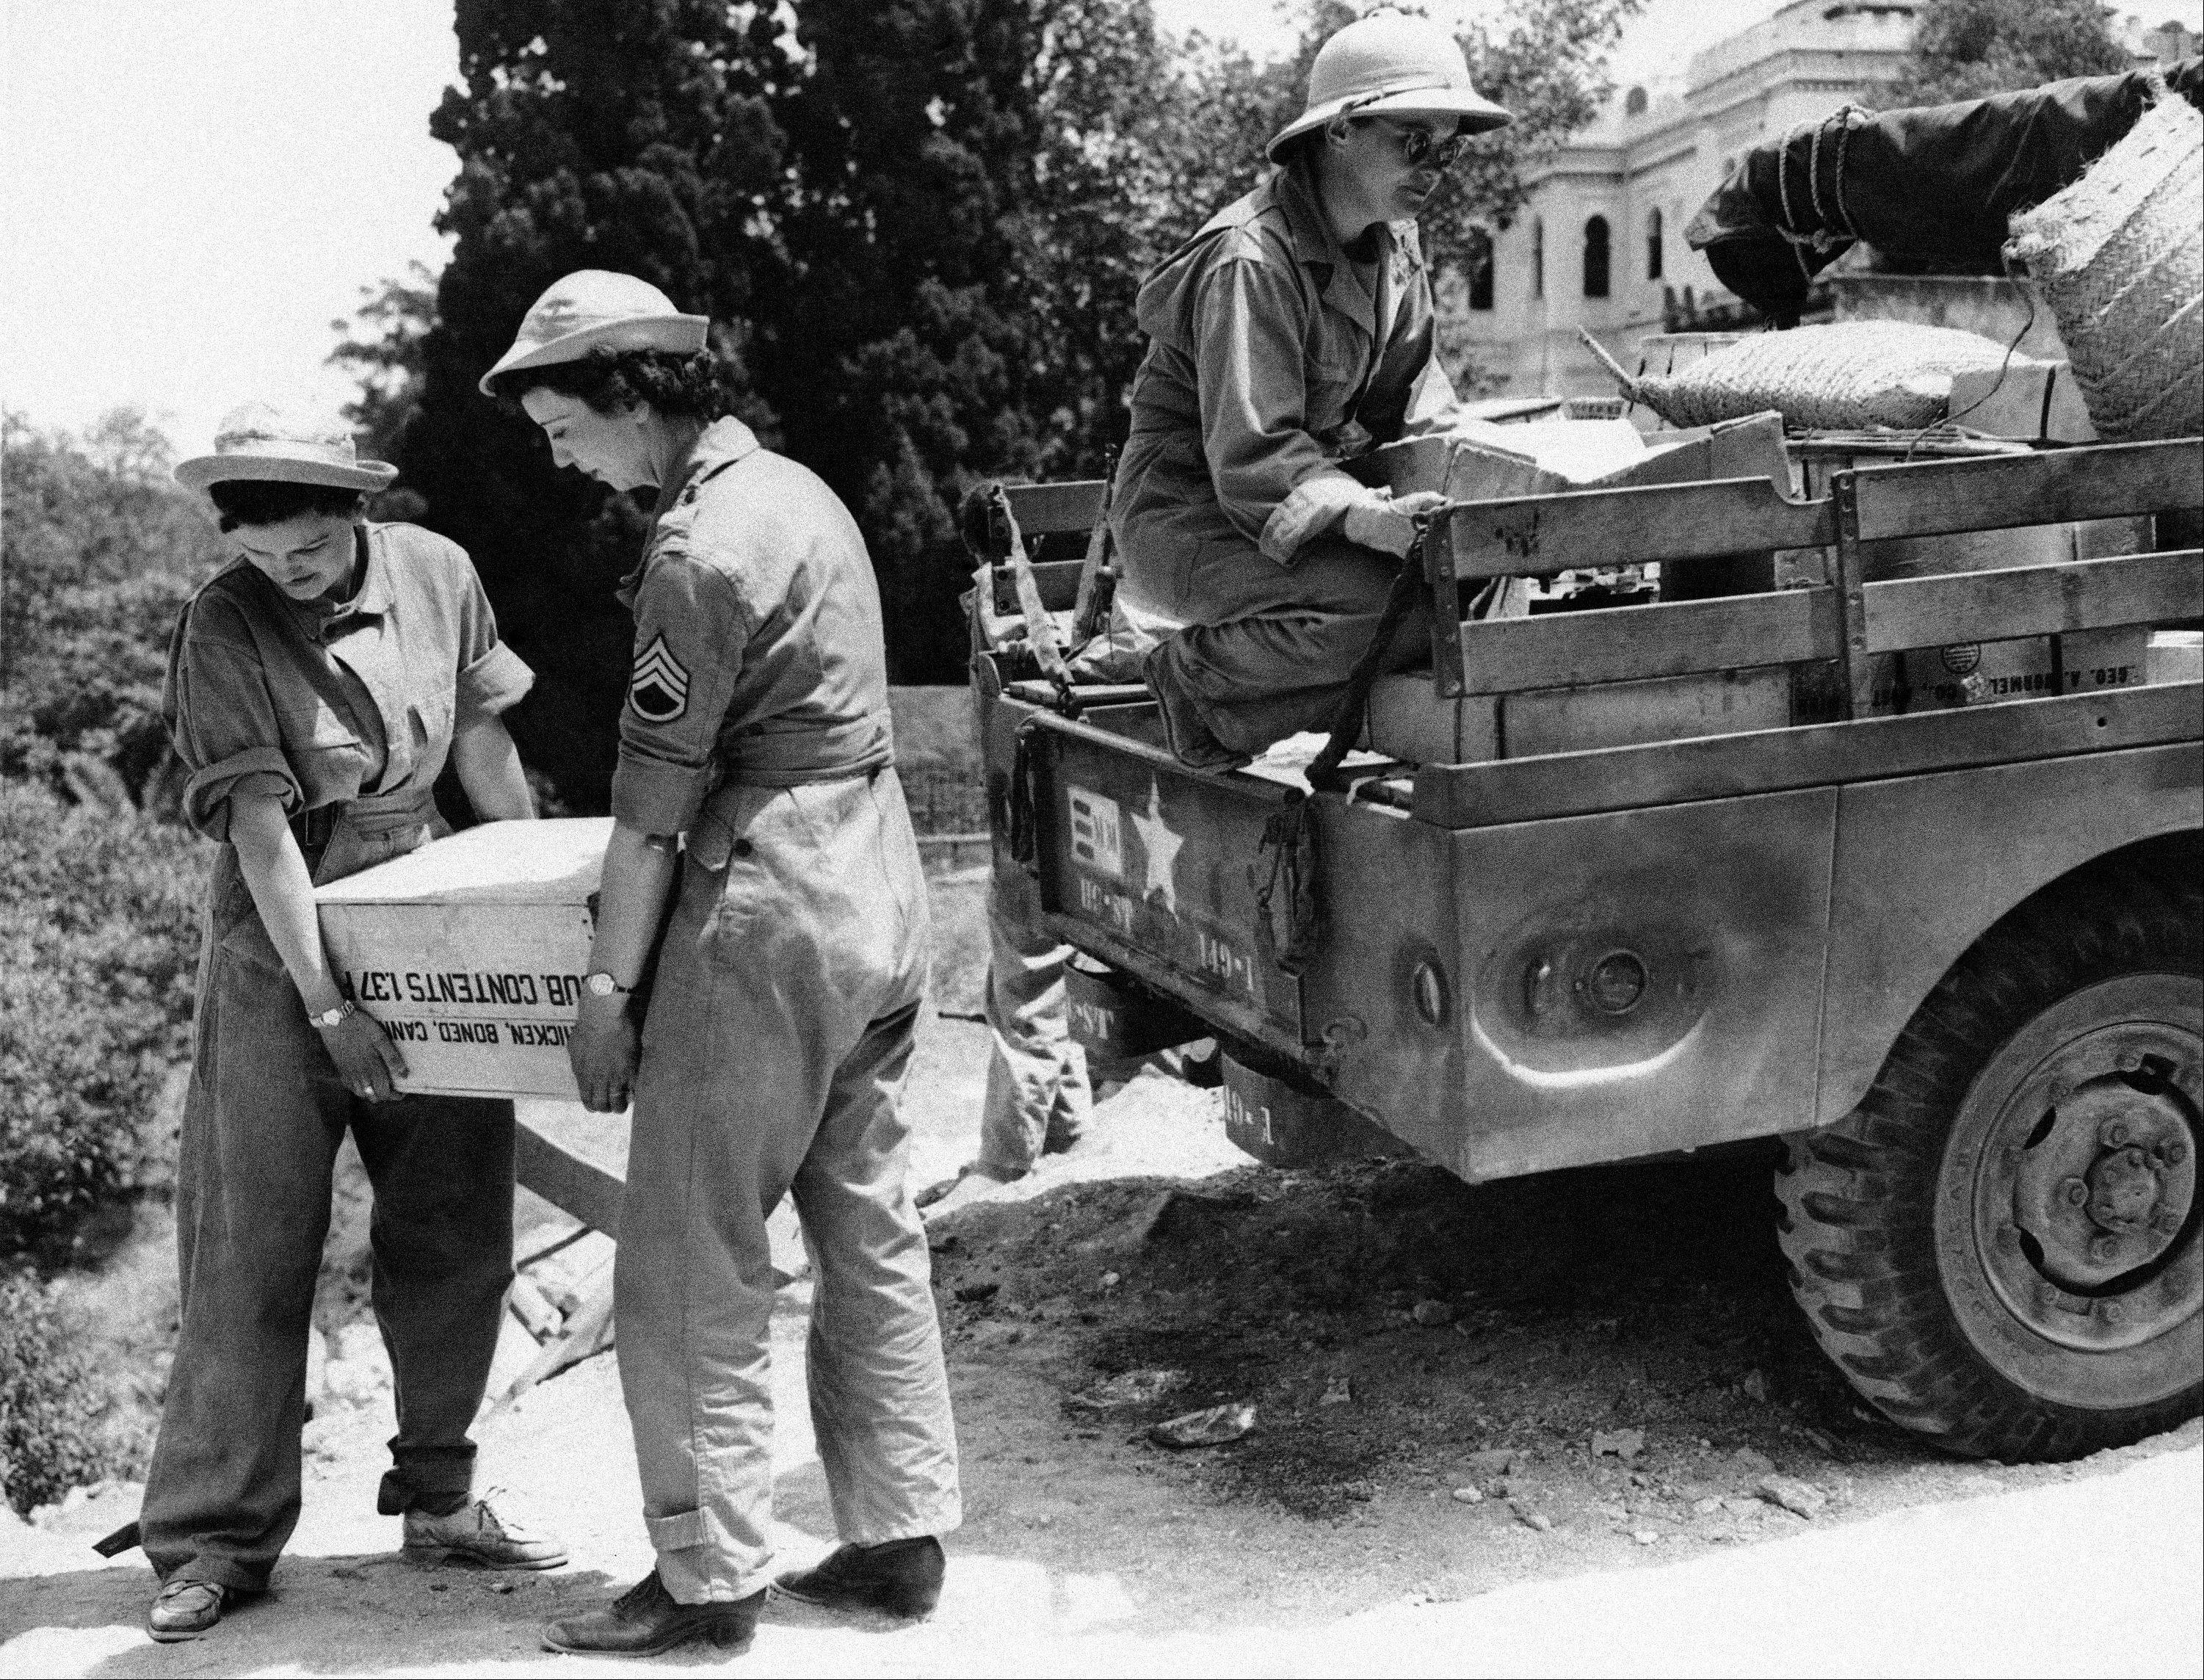 Sept. 11, 1943: Women Army Corps (WAC) soldiers unload supplies somewhere in North Africa.